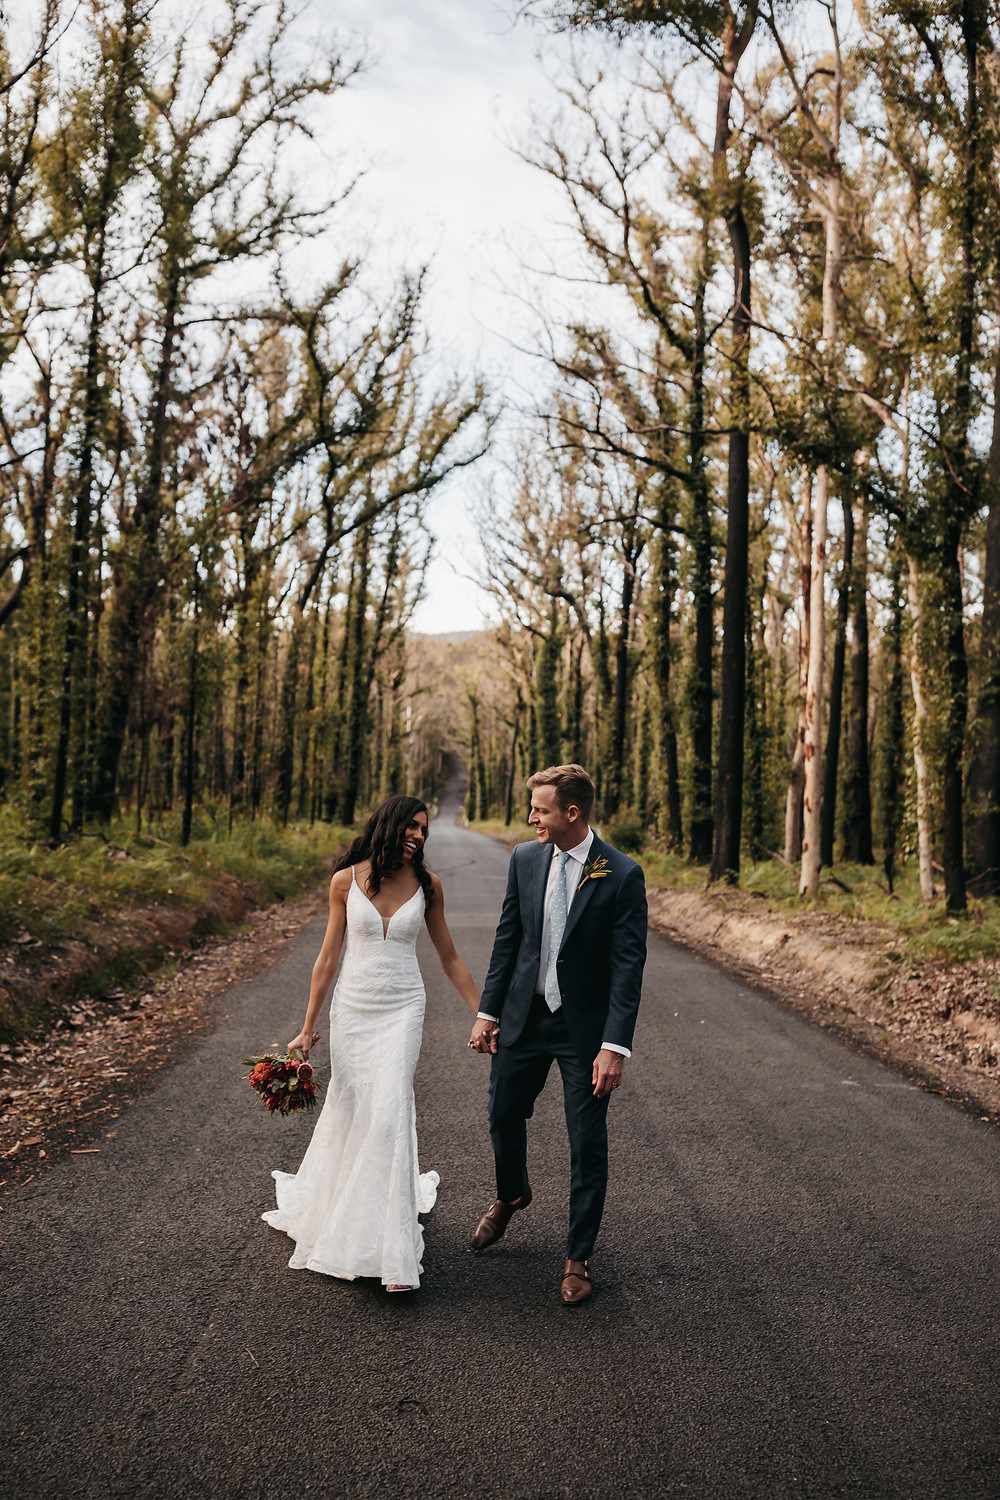 South Coast elopement of a couple on the south coast in Kiama nsw. Shot by Wedding and elopement photographer Matt Ashton Photography